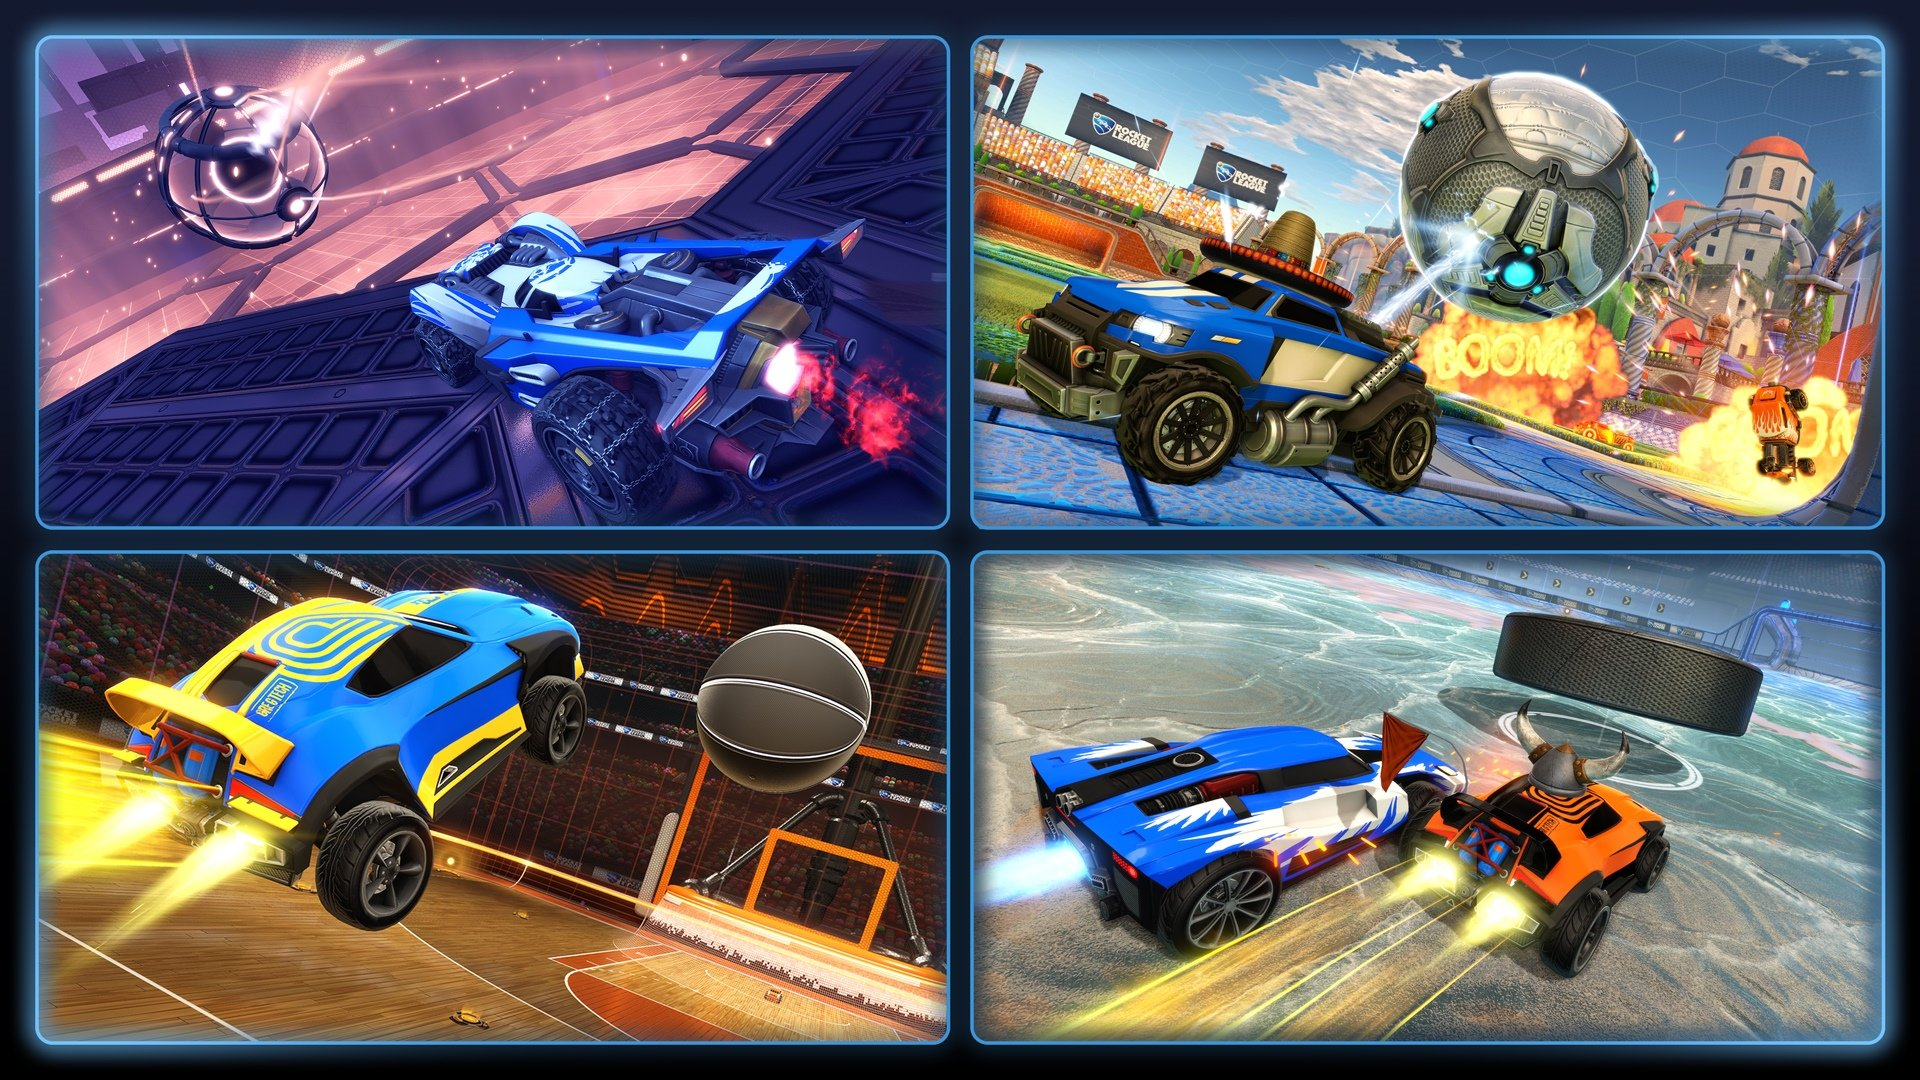 Rocket League to open Season 9 and launch competitive